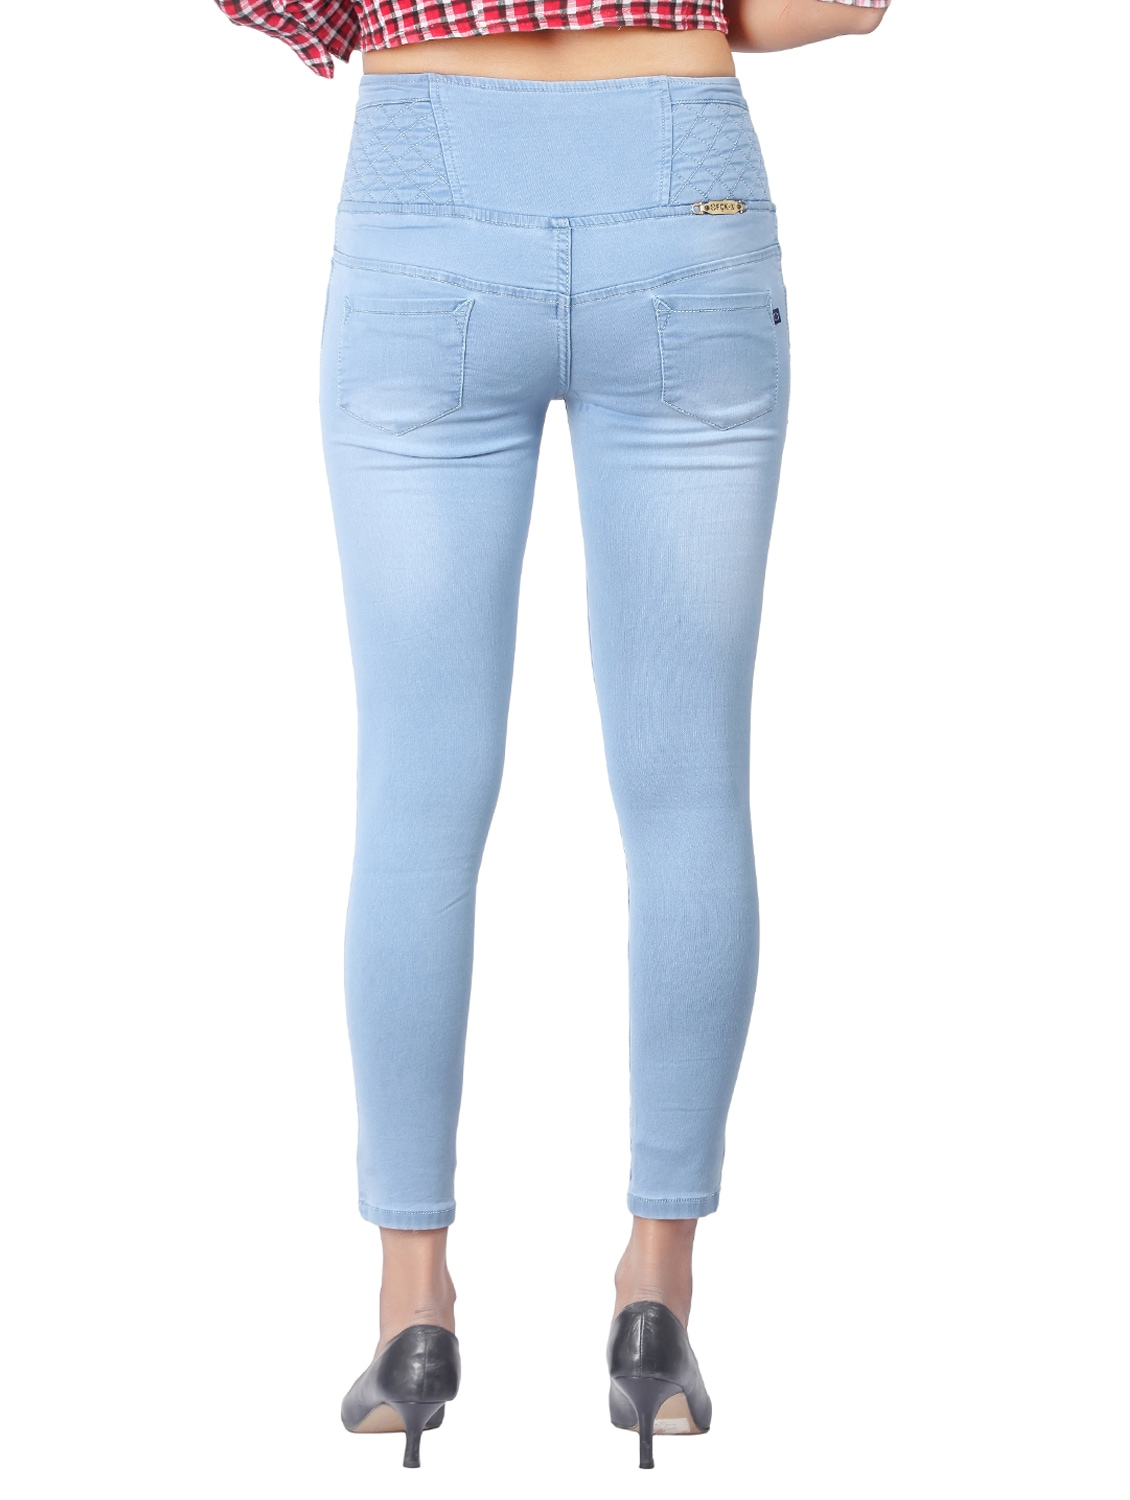 170290028a305 Buy Light Blue Denim Jeans for Women from Fck-3 for ₹1518 at 2% off ...